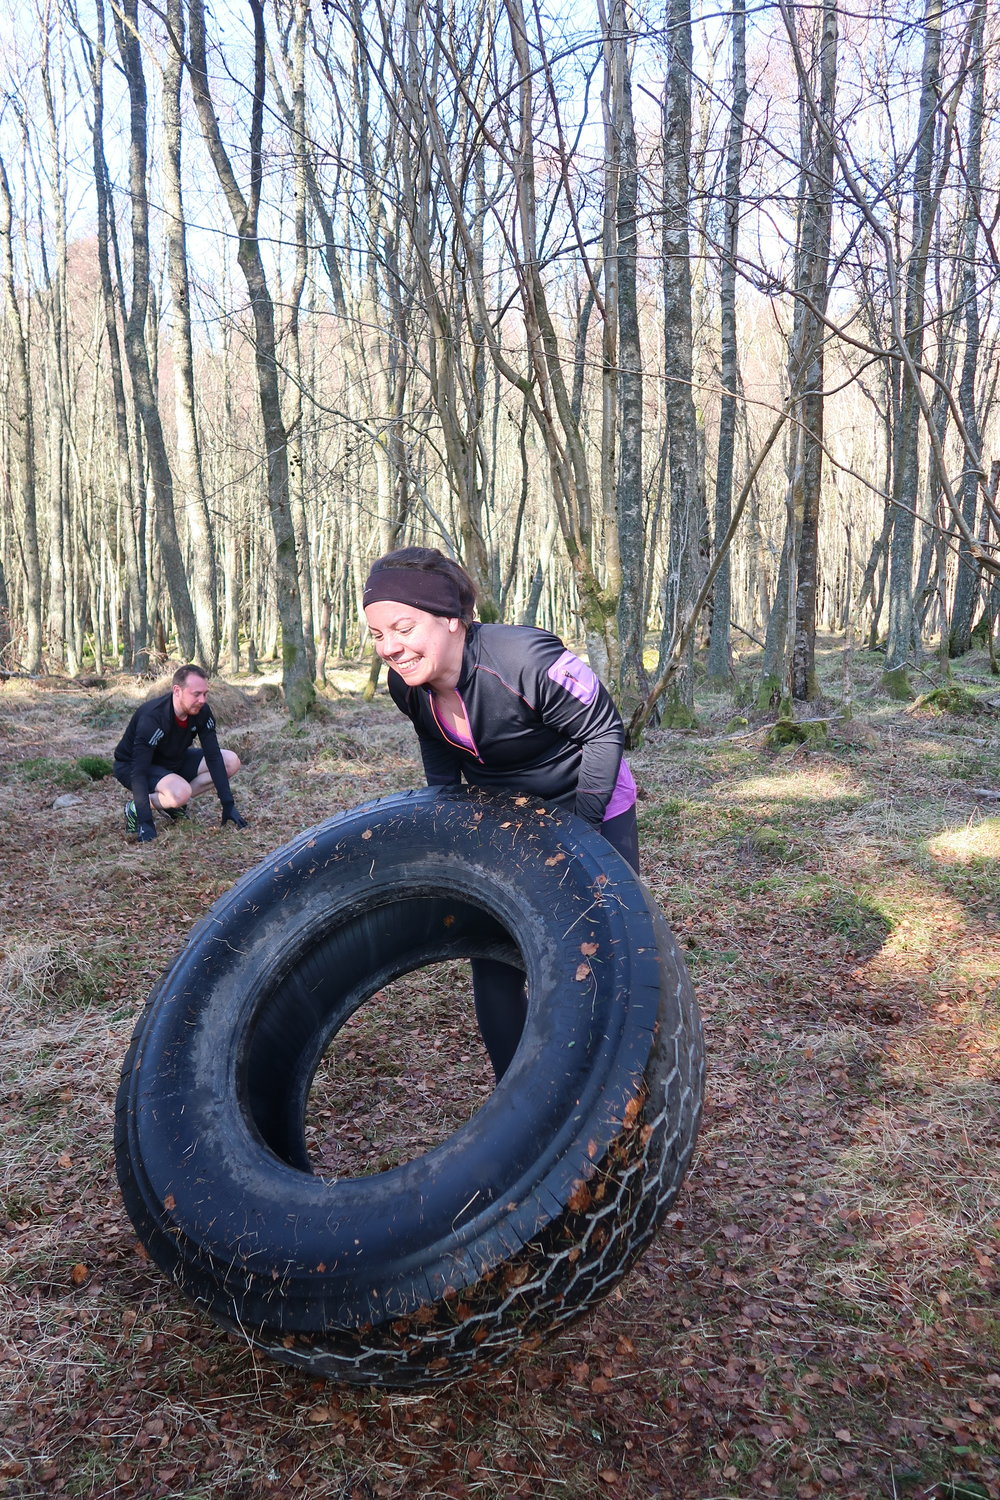 Catherine worked her way up to the BIG tyre! Go Girl!